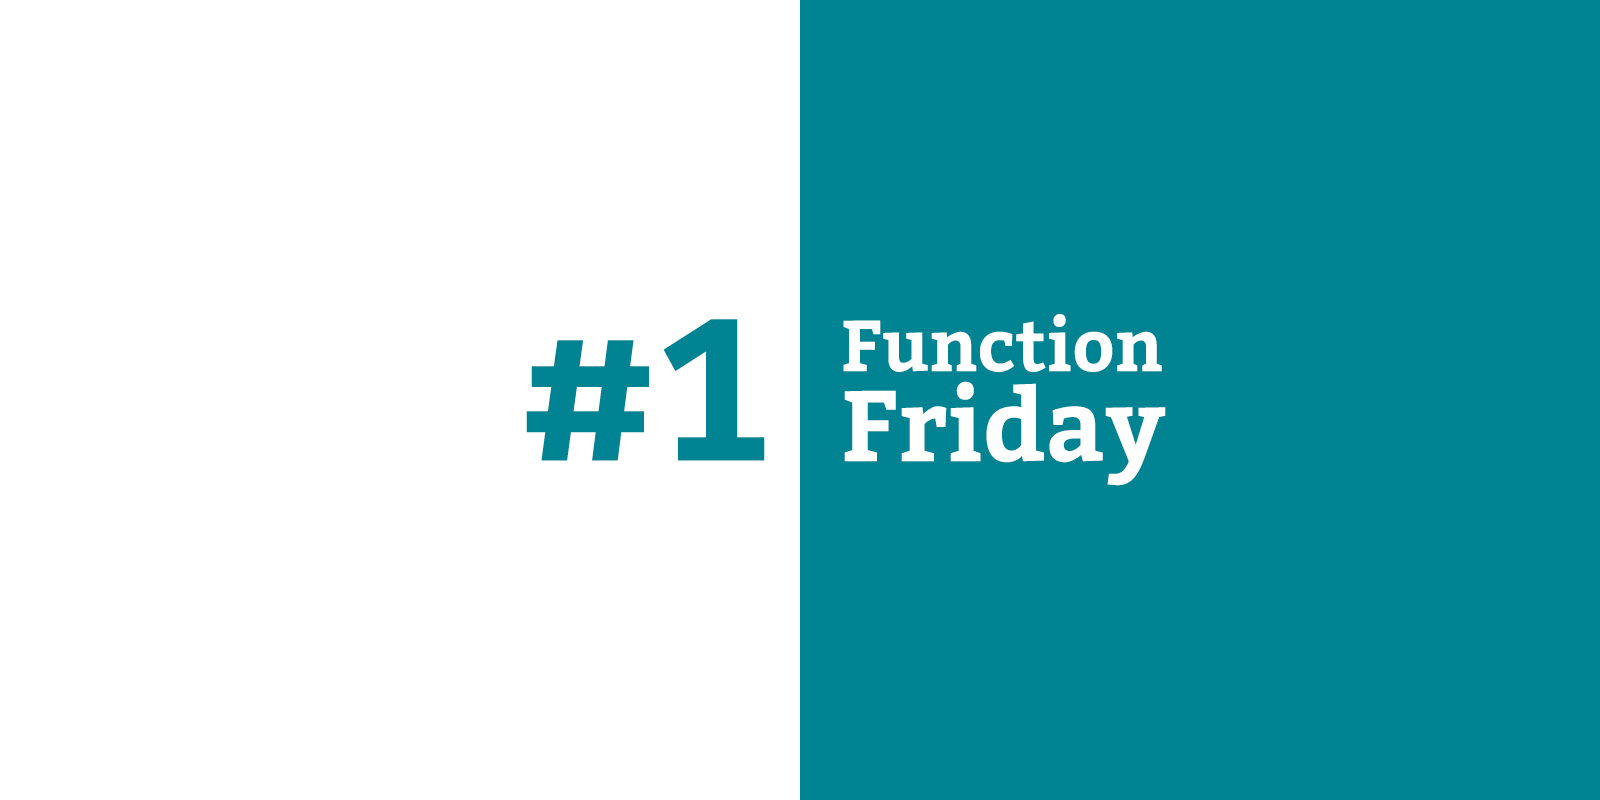 Function Friday #1